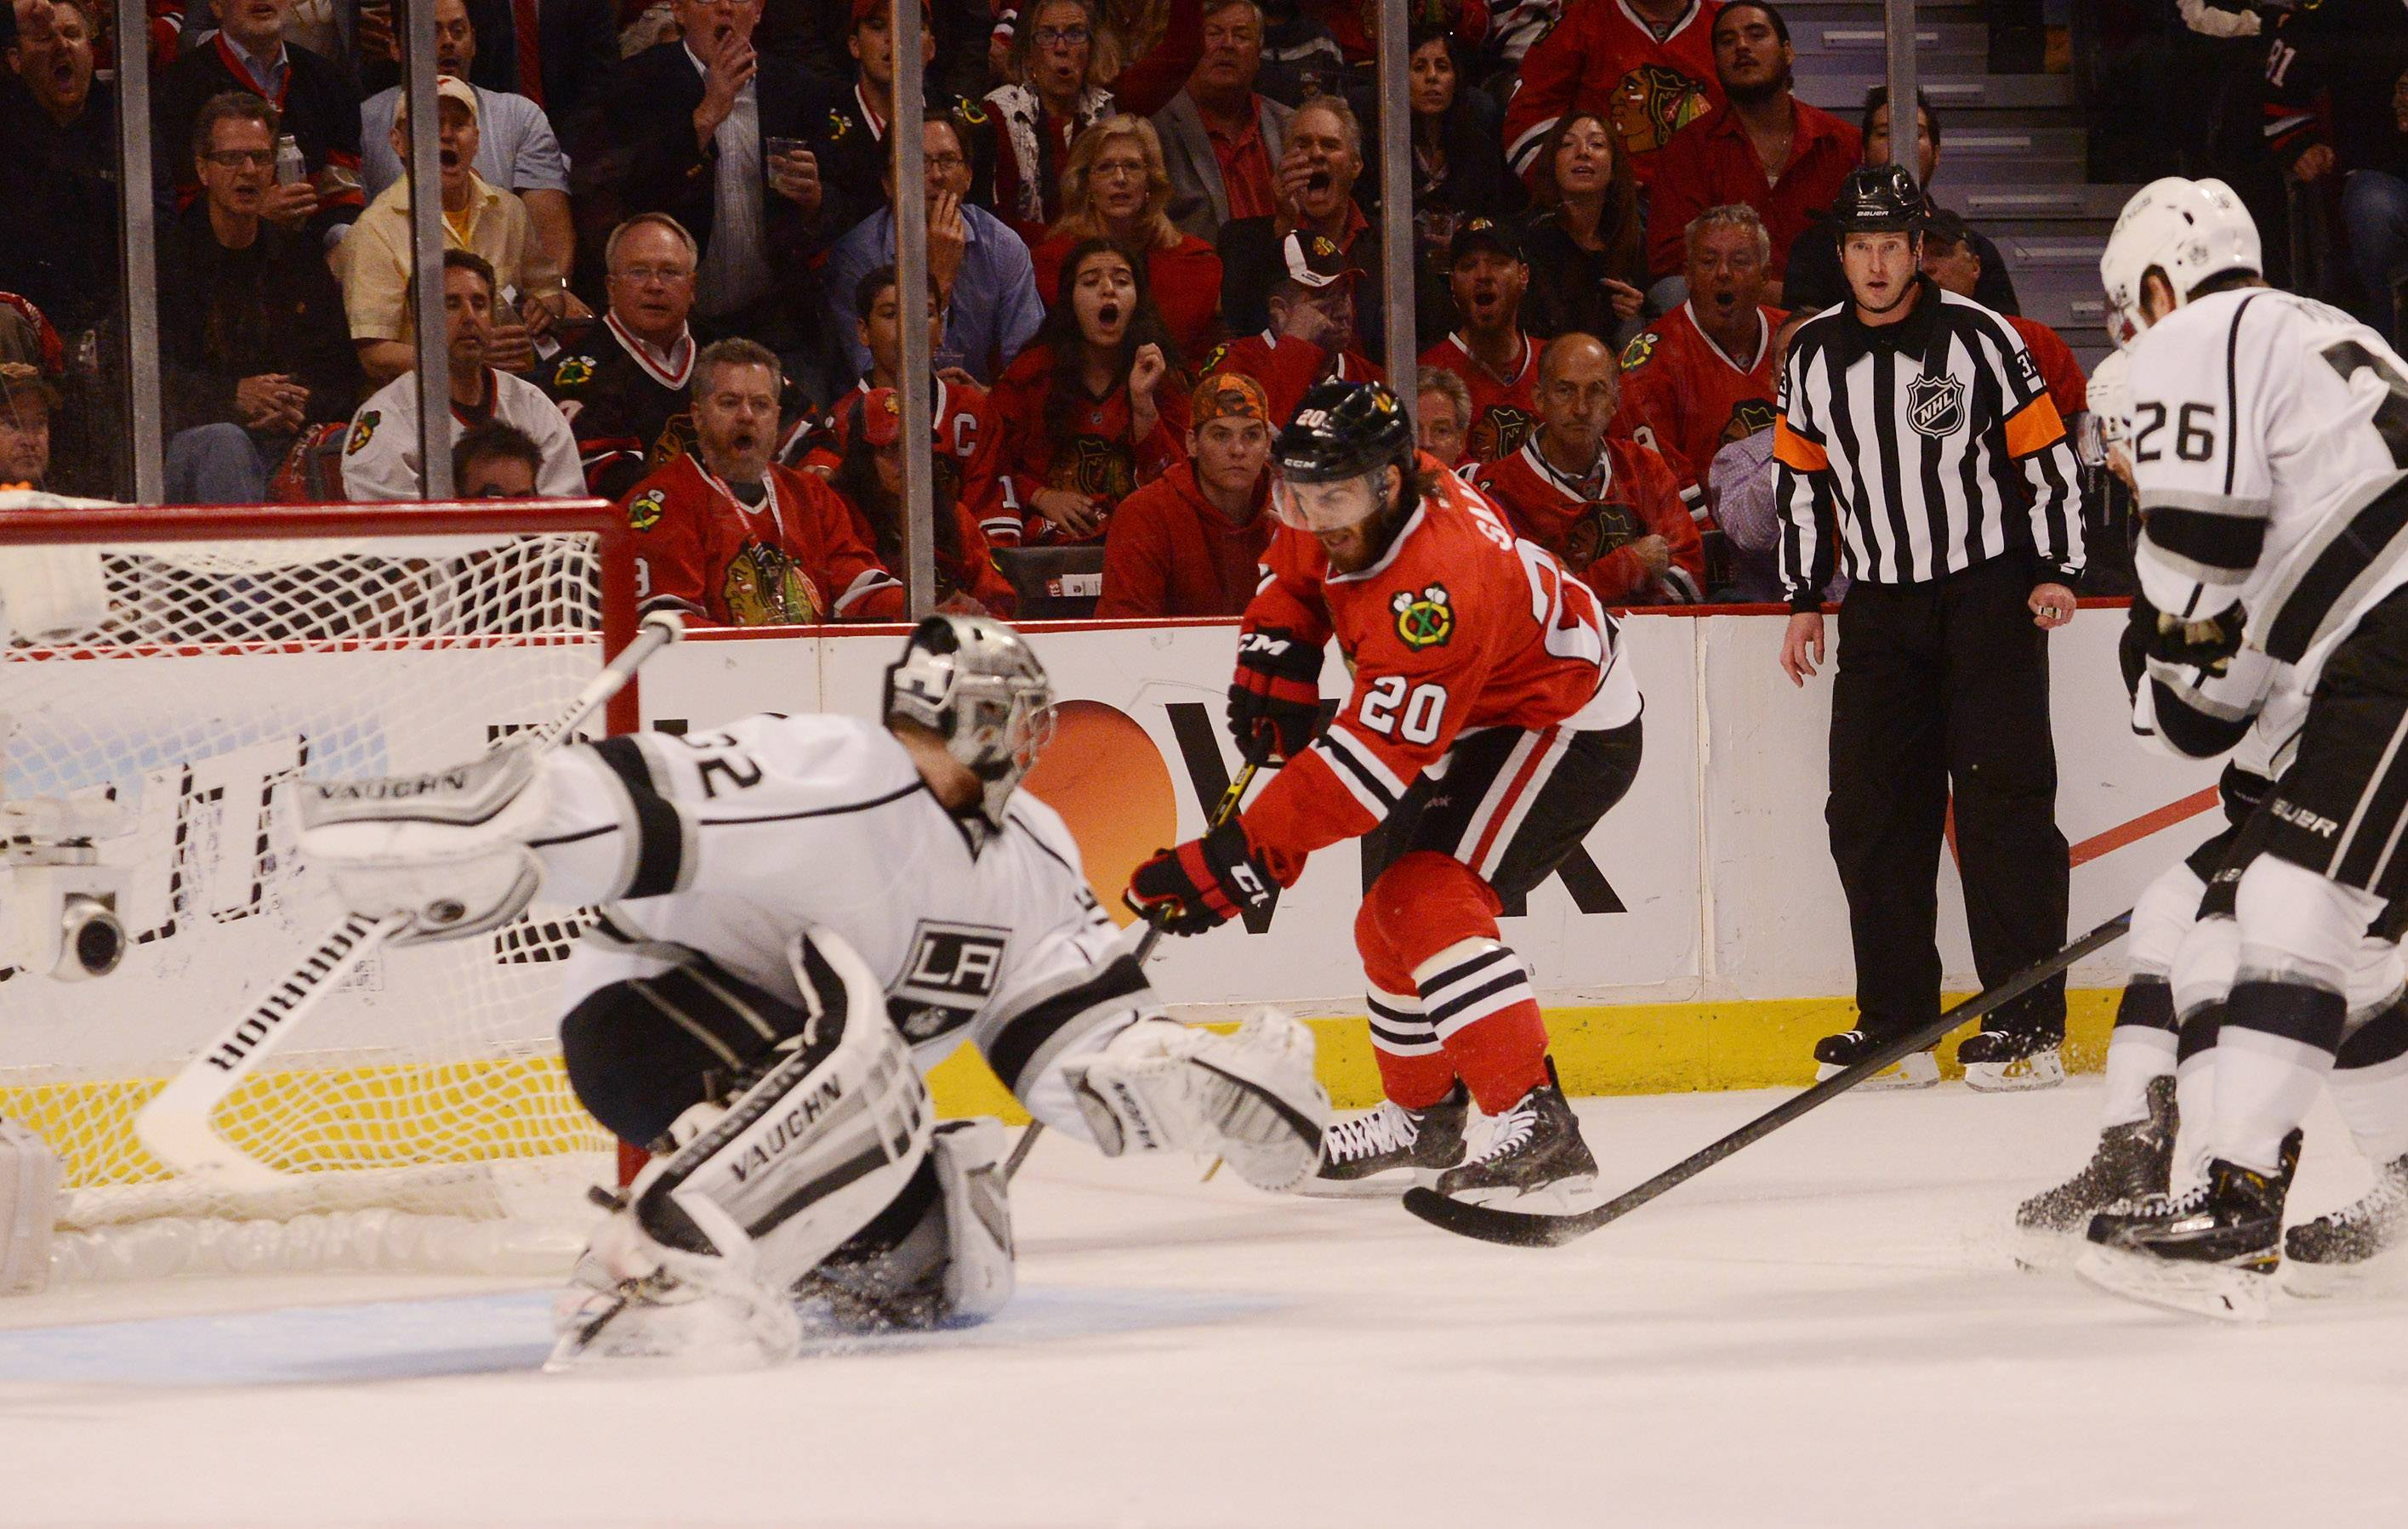 Blackhawks left wing Brandon Saad scores in the first period during Game 5 of the Western Conference finals at the United Center on Wednesday night.